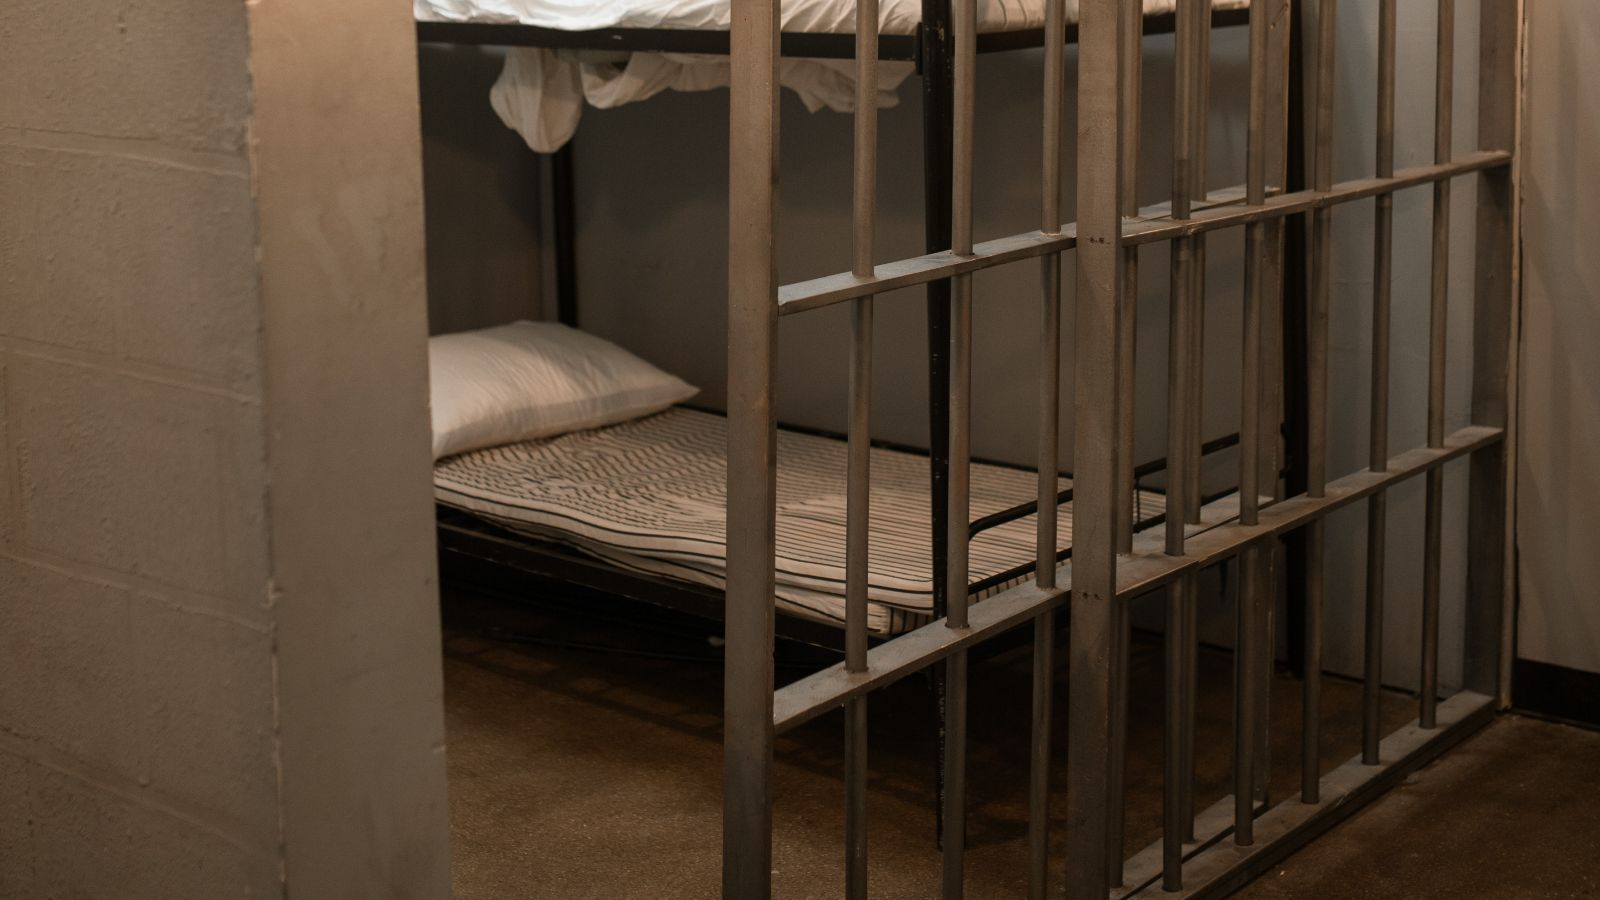 Prison cell showing bunk beds